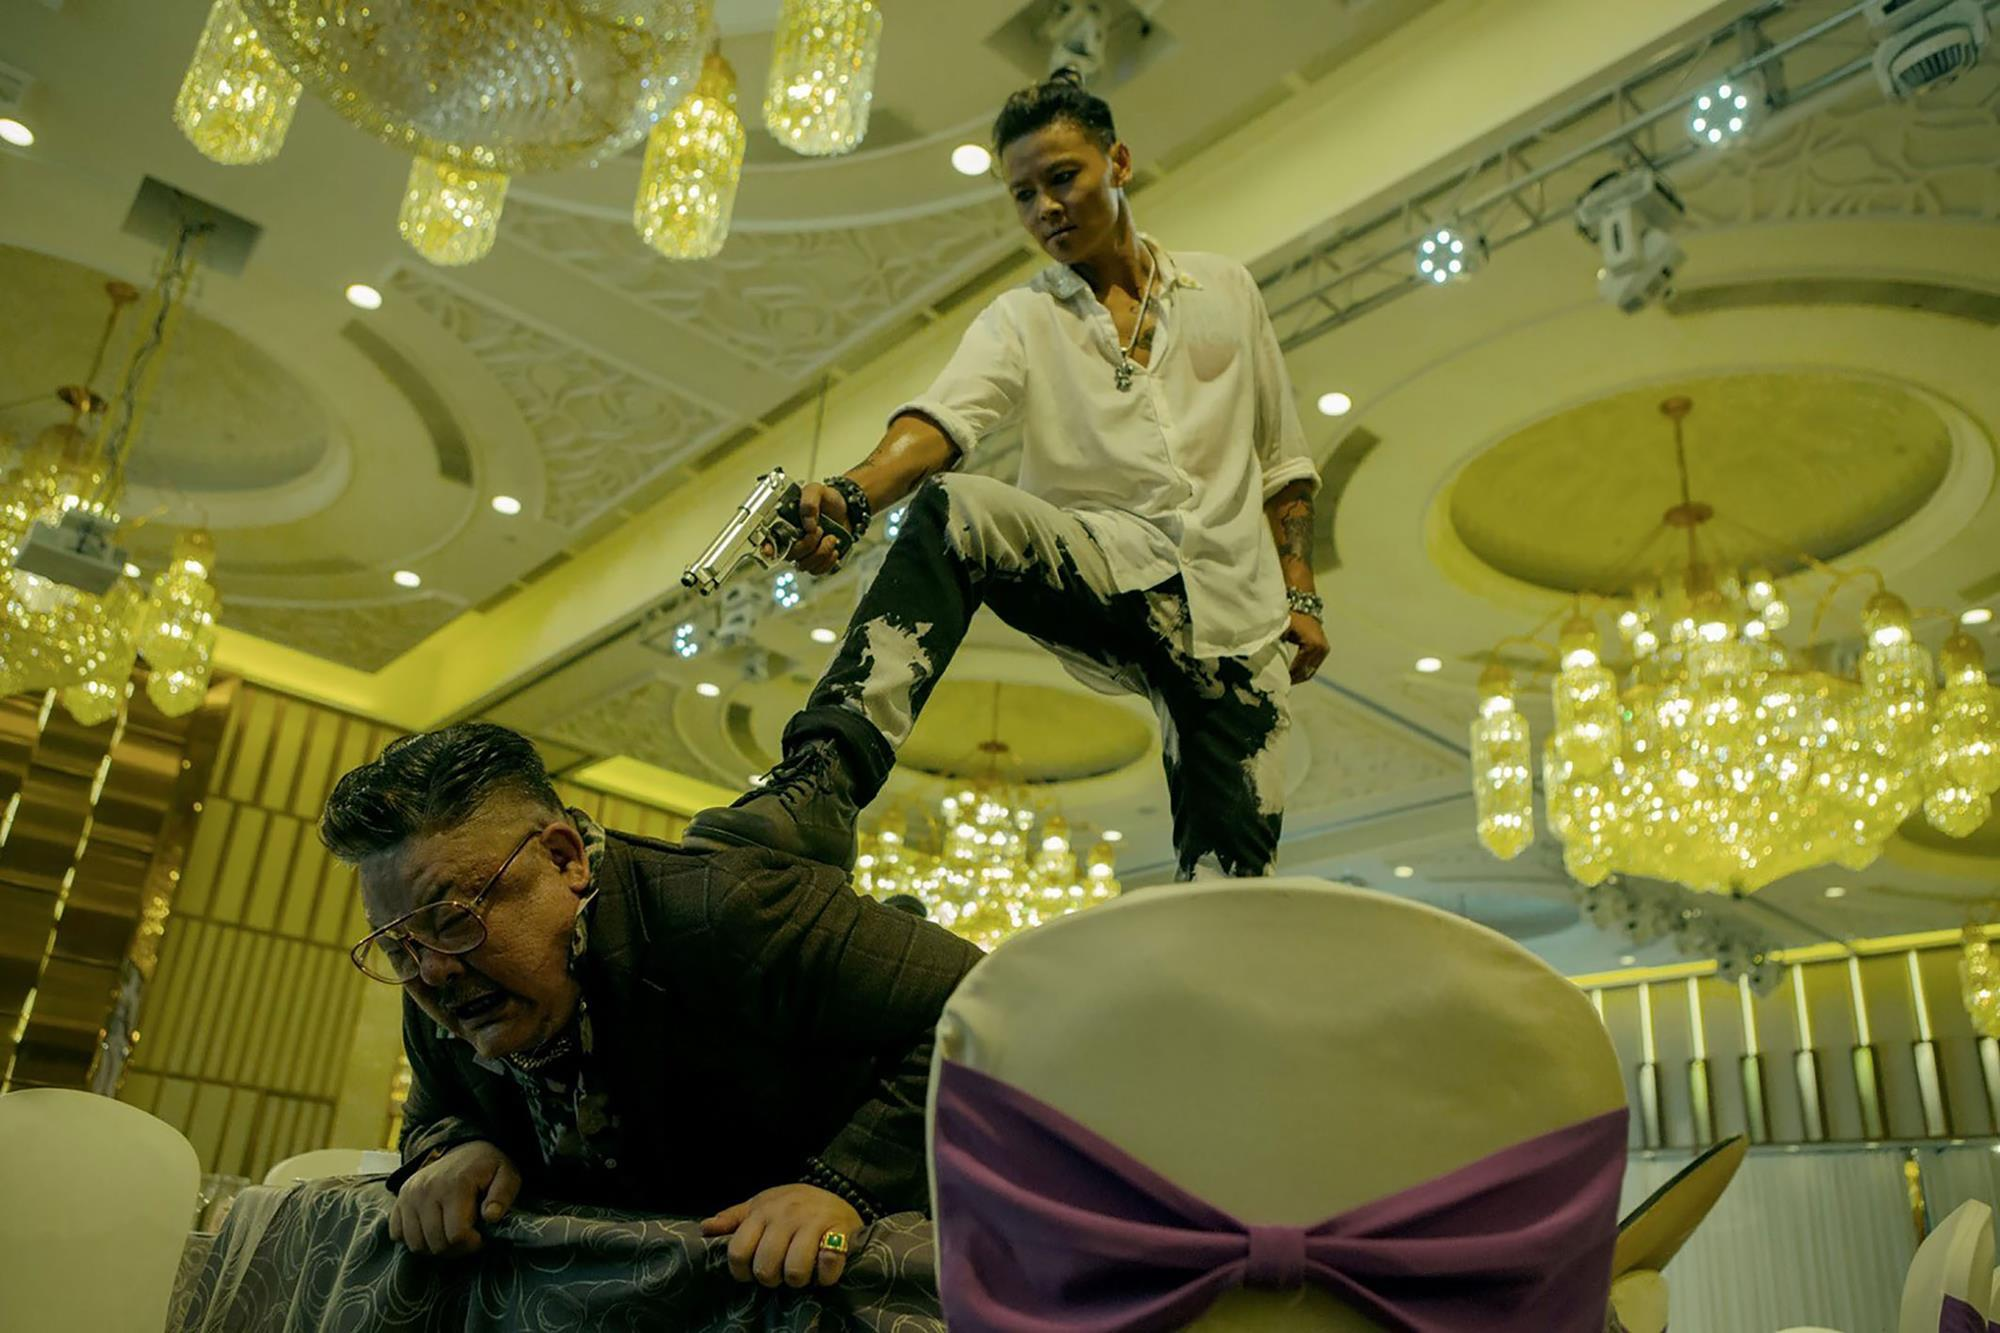 Afm 2017 The Buzz Titles From Hong Kong And China Features Screen